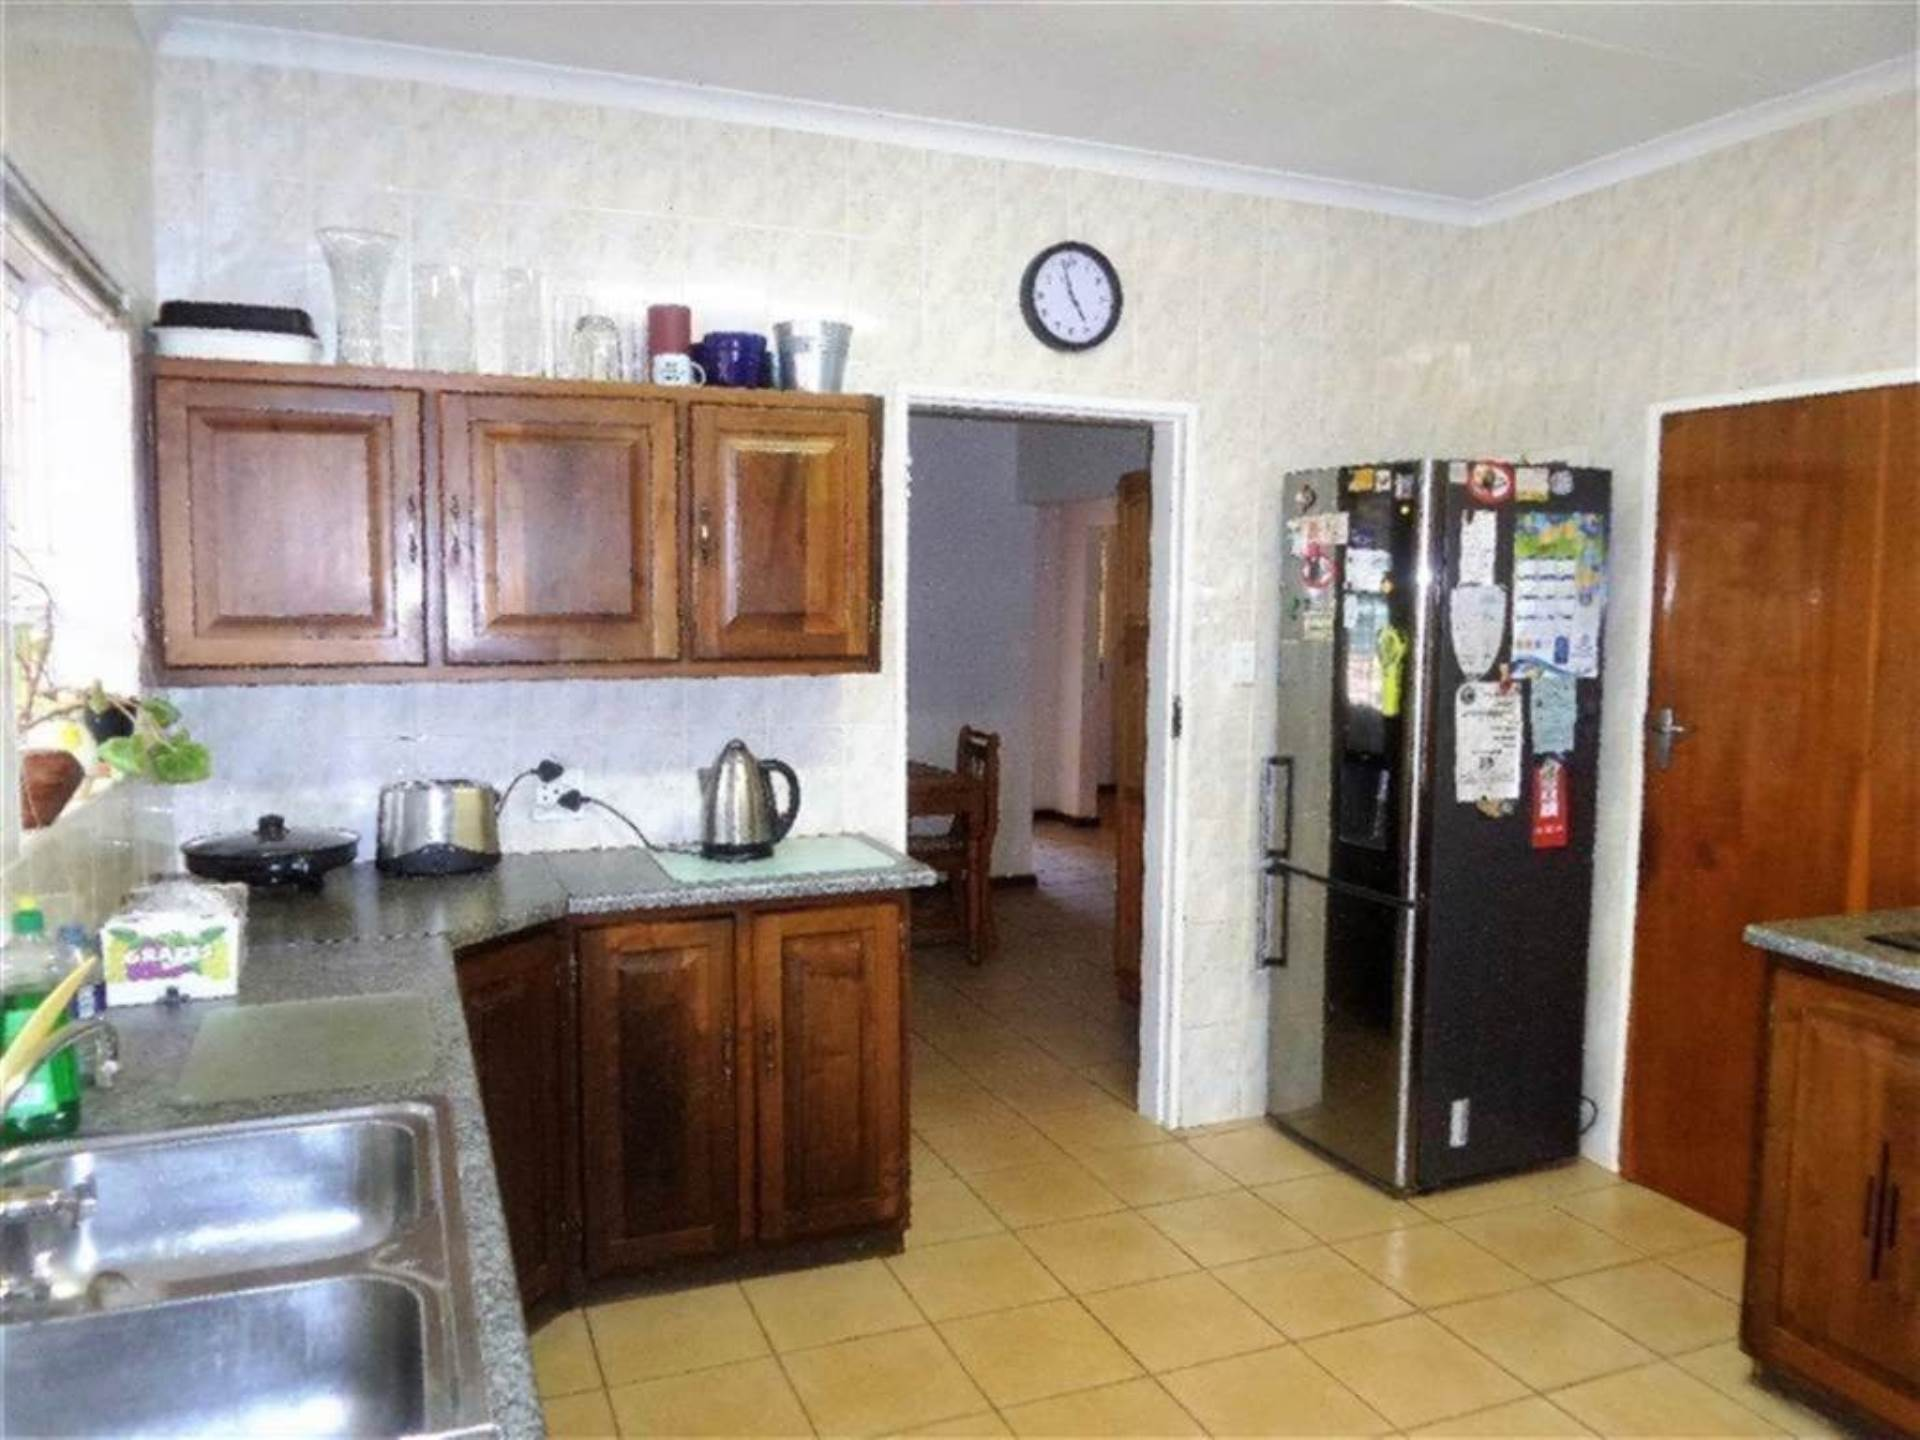 Centurion Central property for sale. Ref No: 13586054. Picture no 2